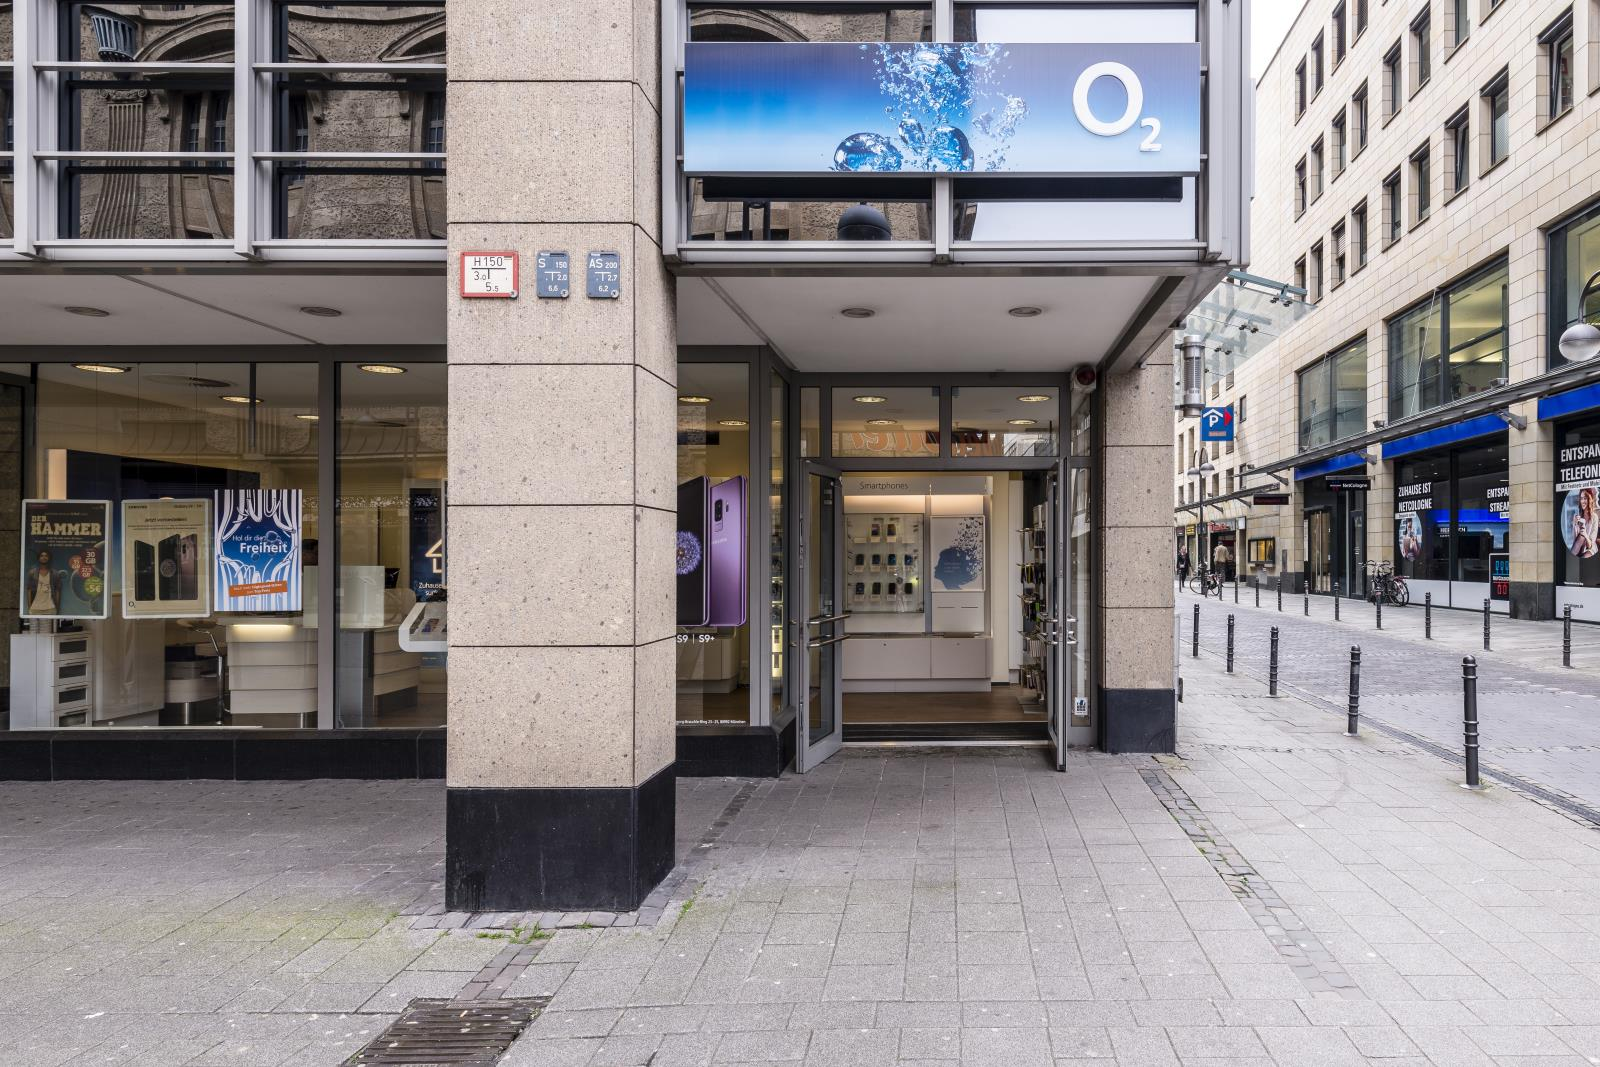 o2 Shop, Richmodstr. 4-8 in Köln